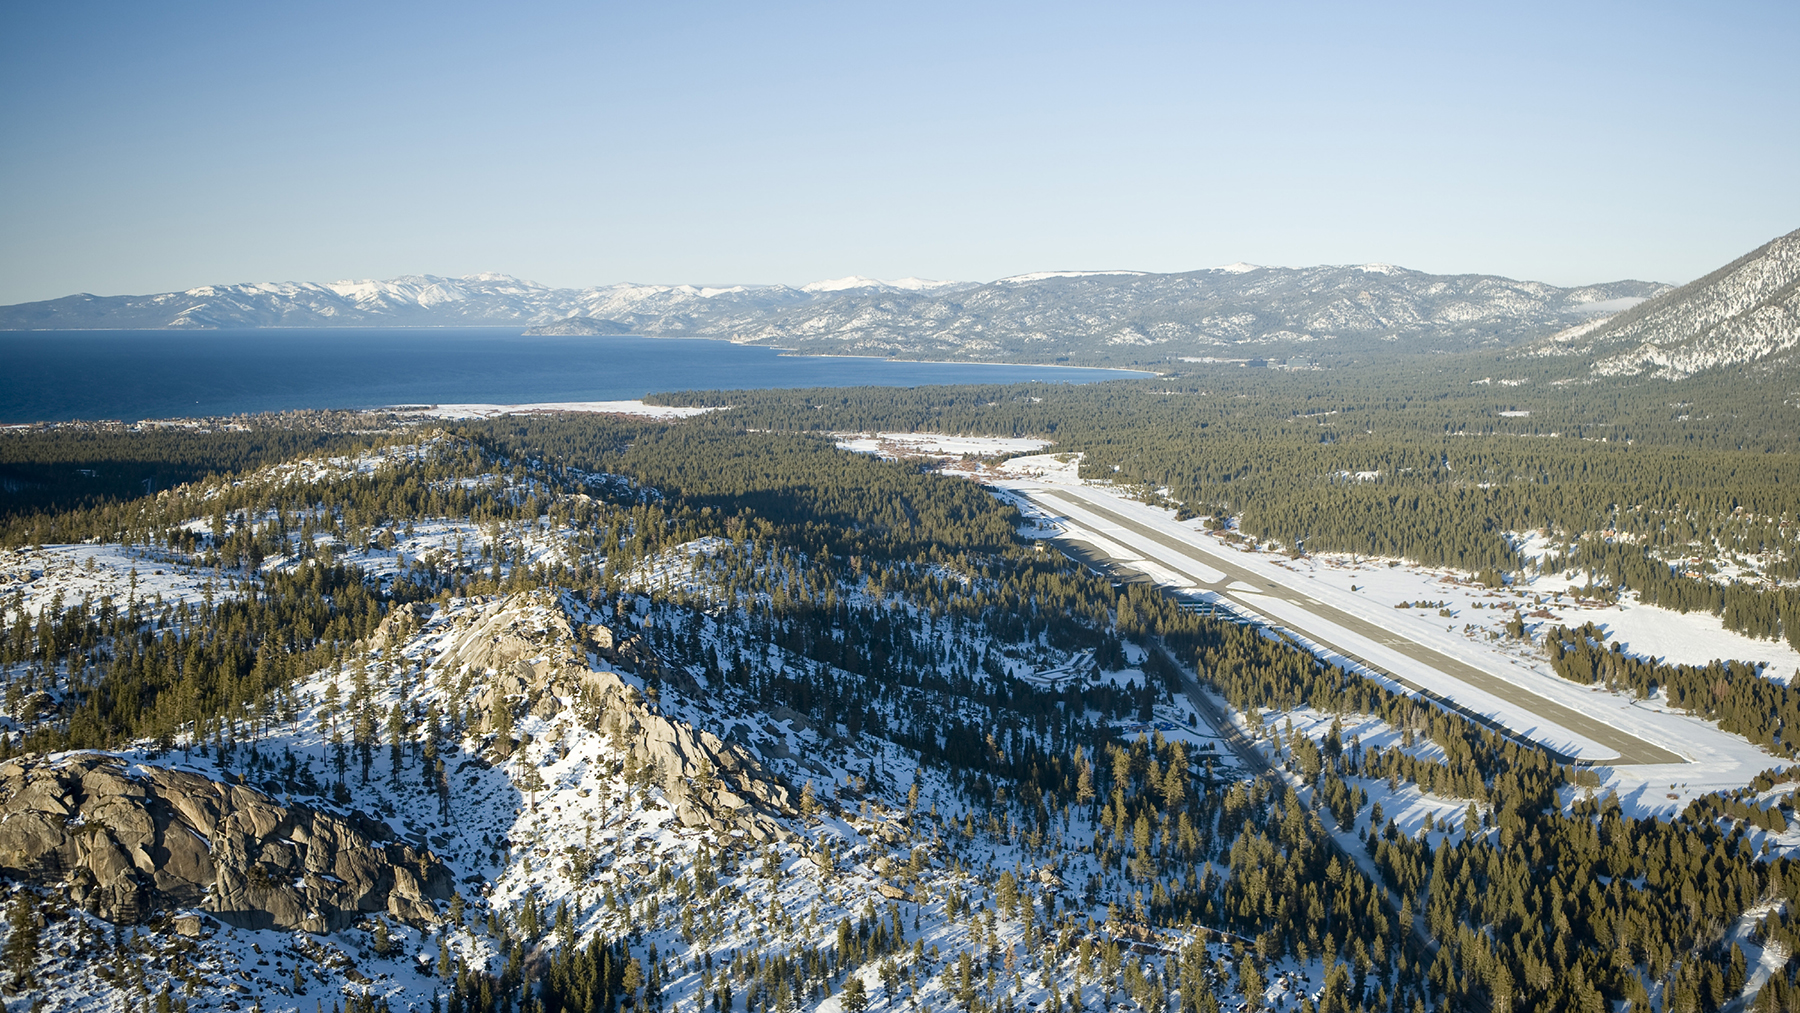 Lake Tahoe Airport